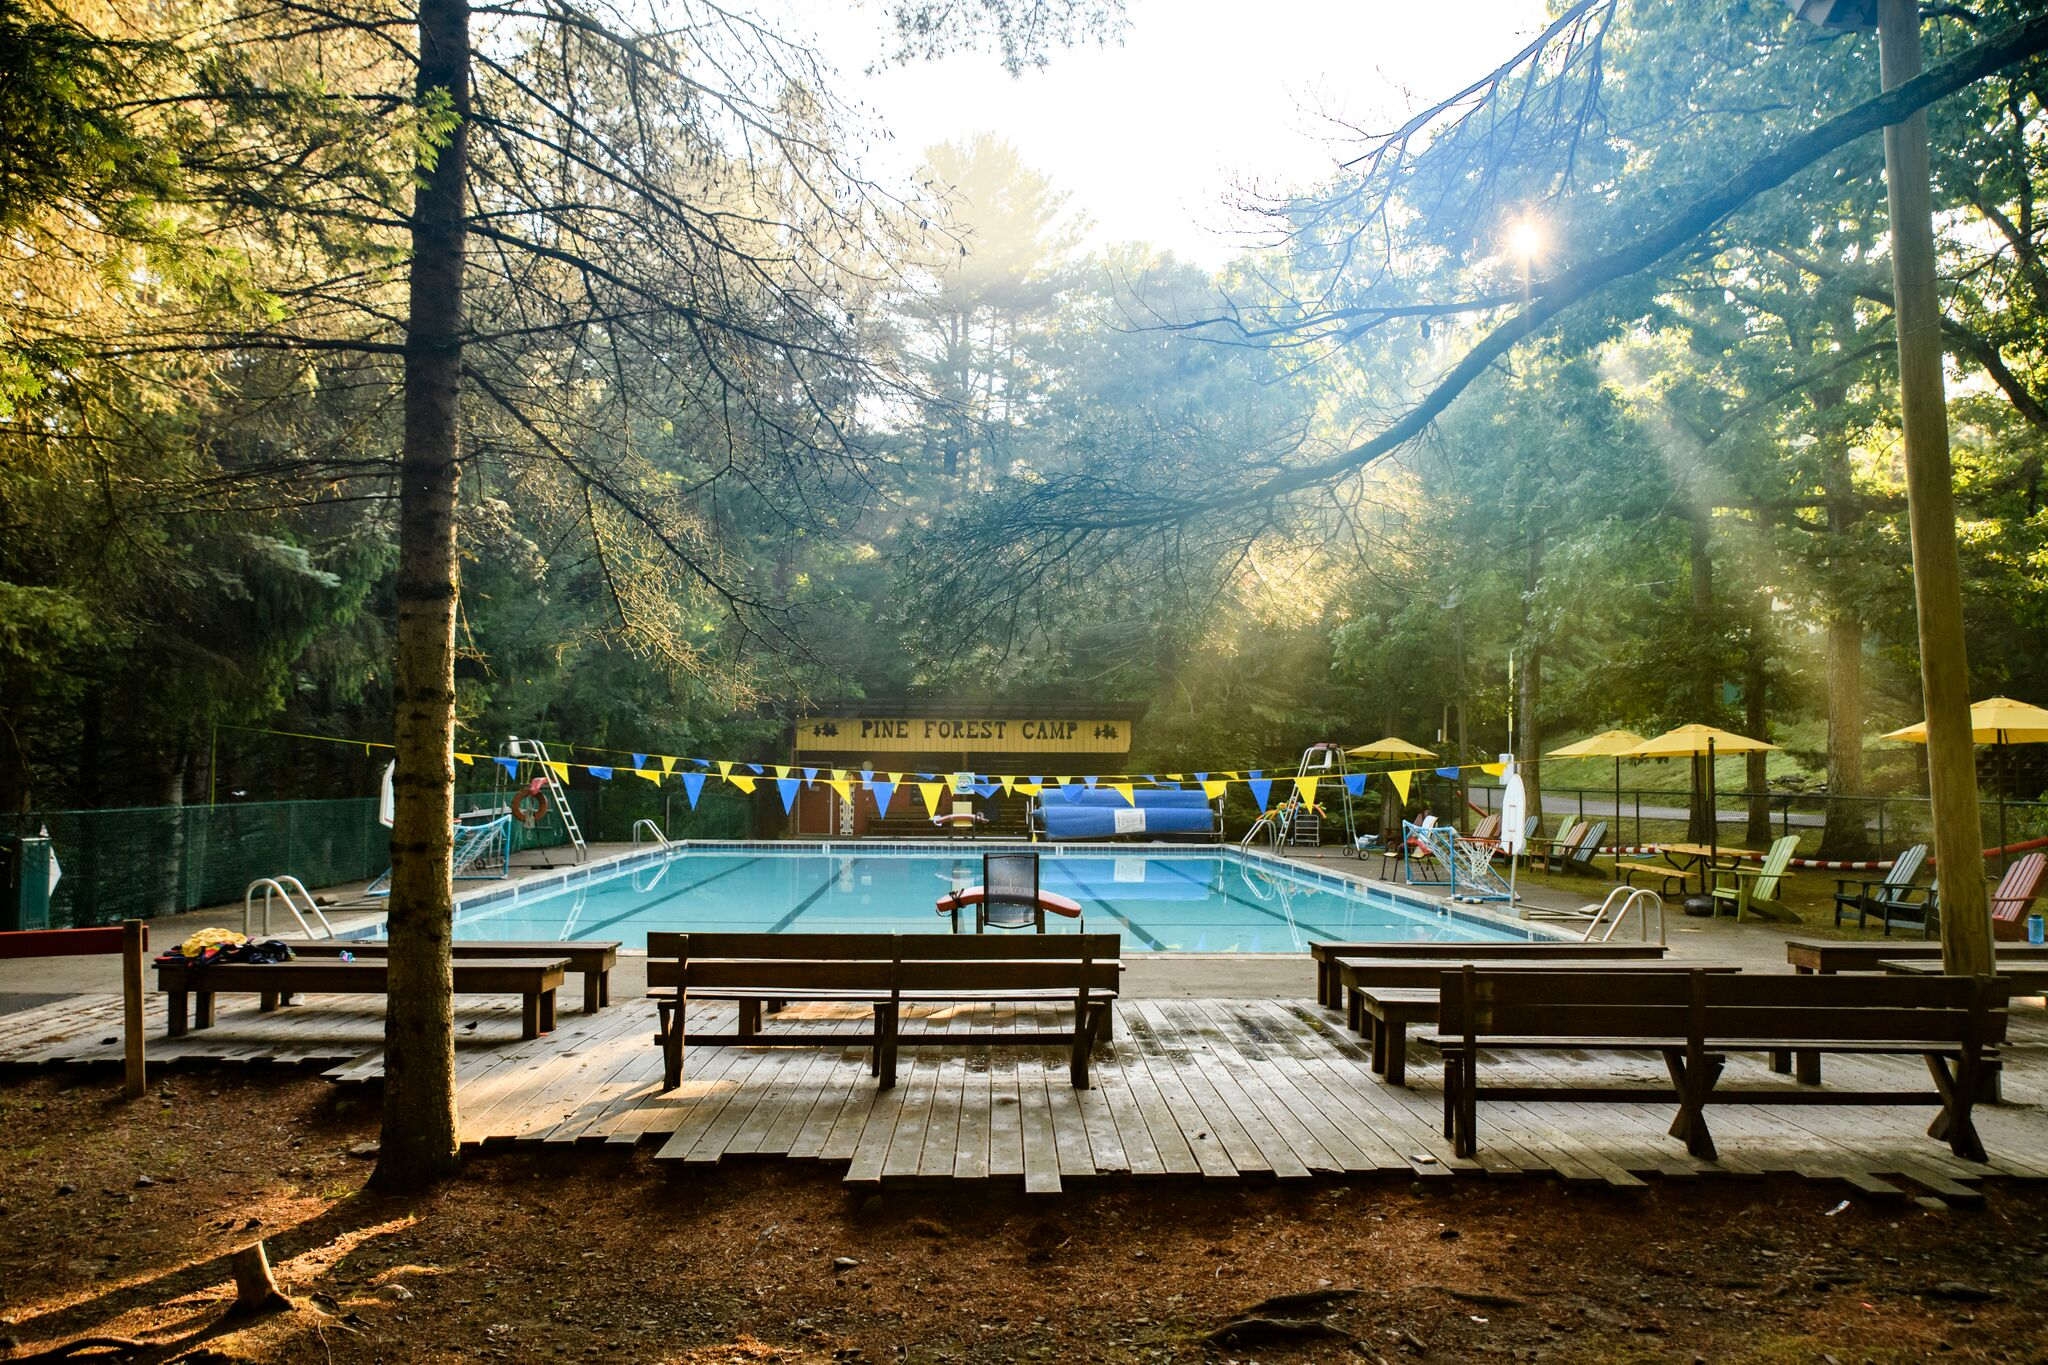 Boy's Pool at Pine Forest Camp